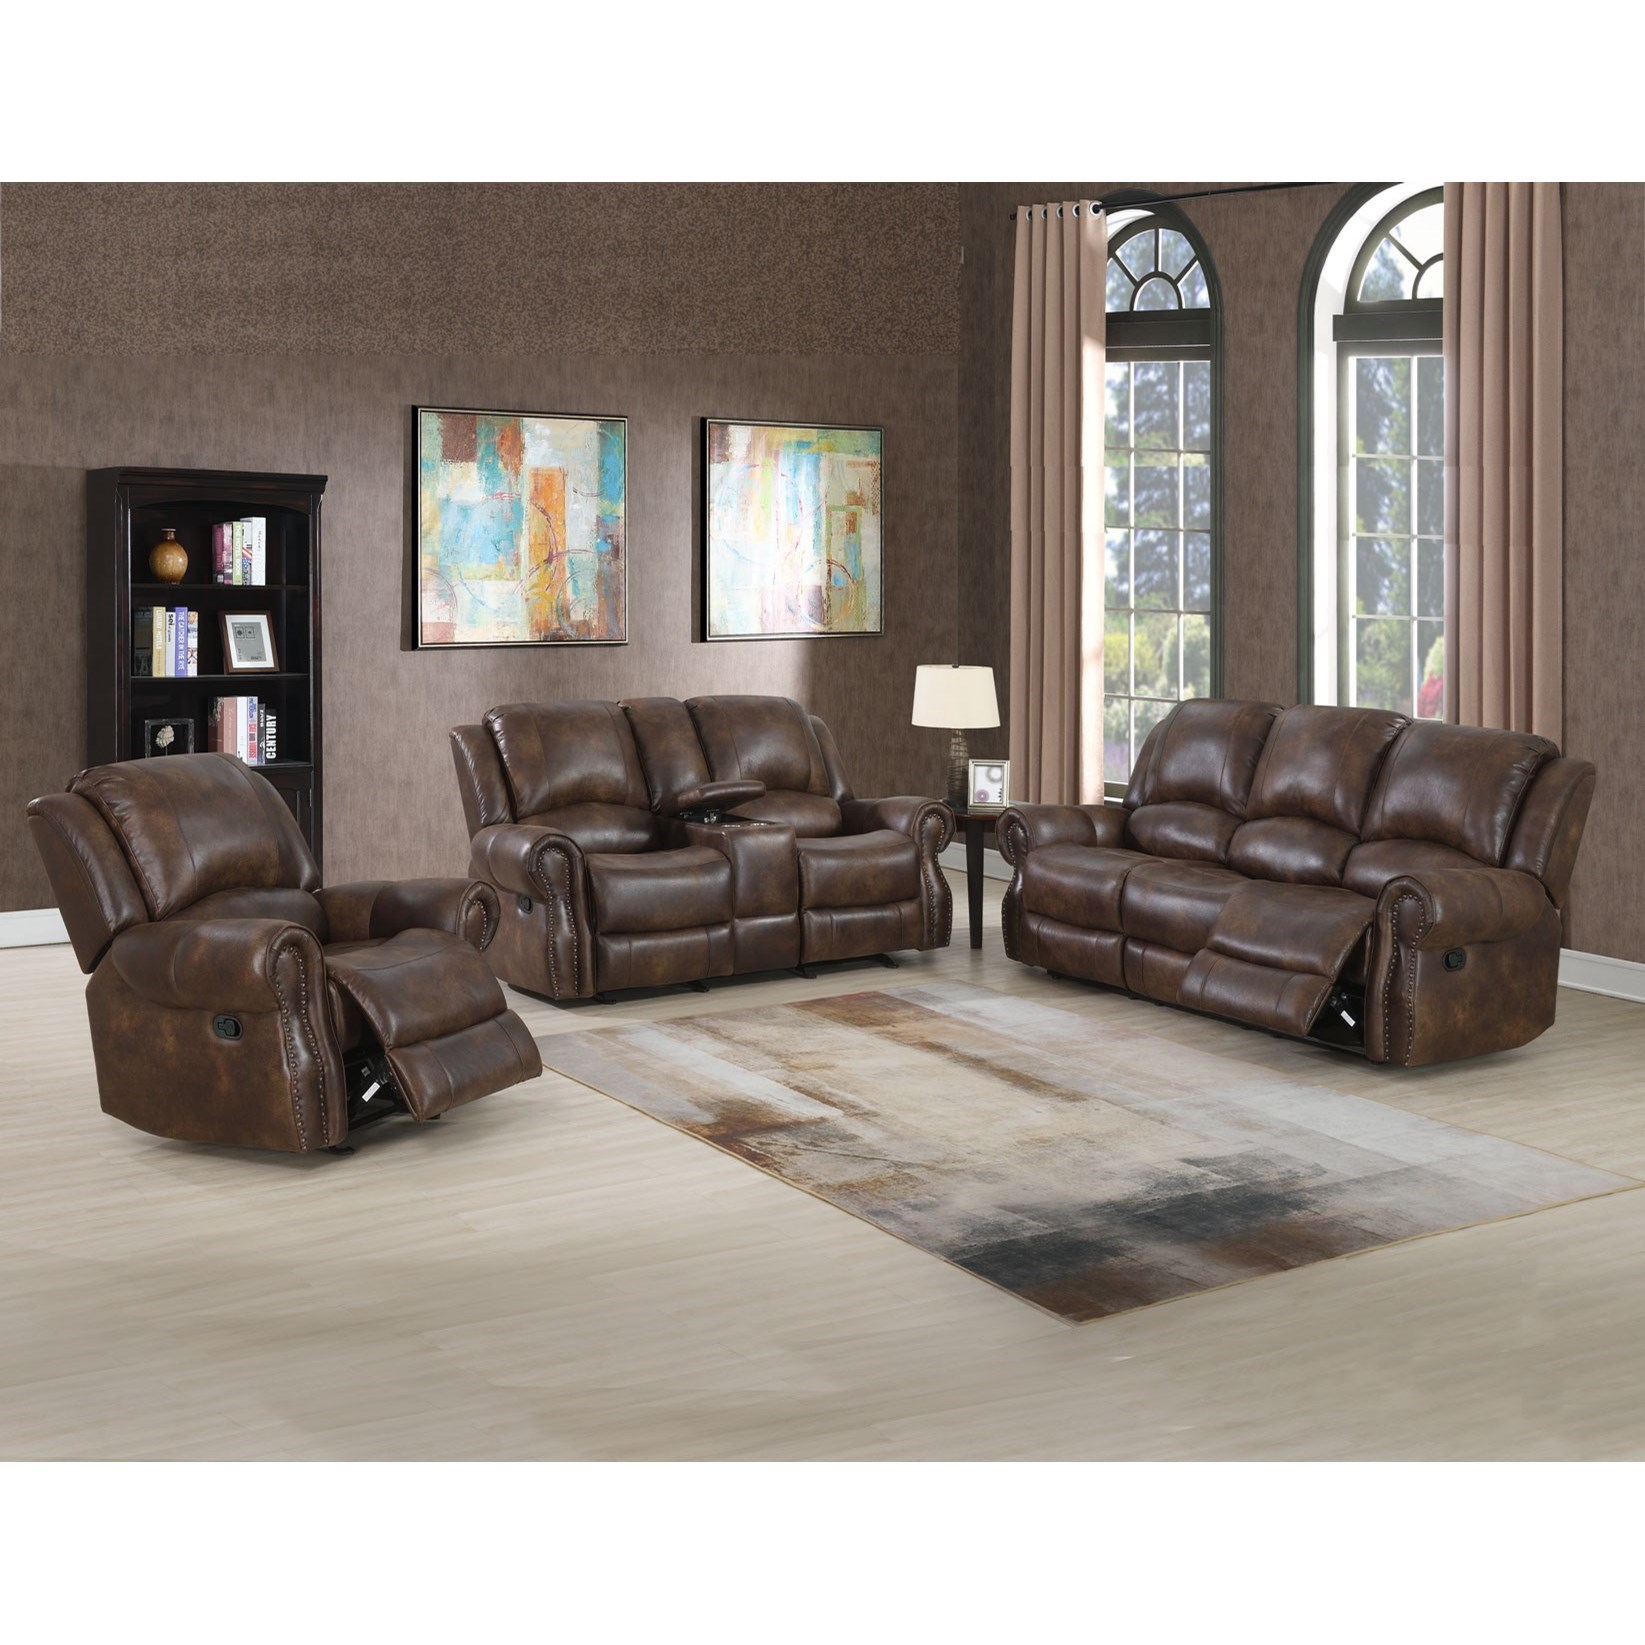 Navarro Reclining Living Room Group by Vendor 3985 at Becker Furniture